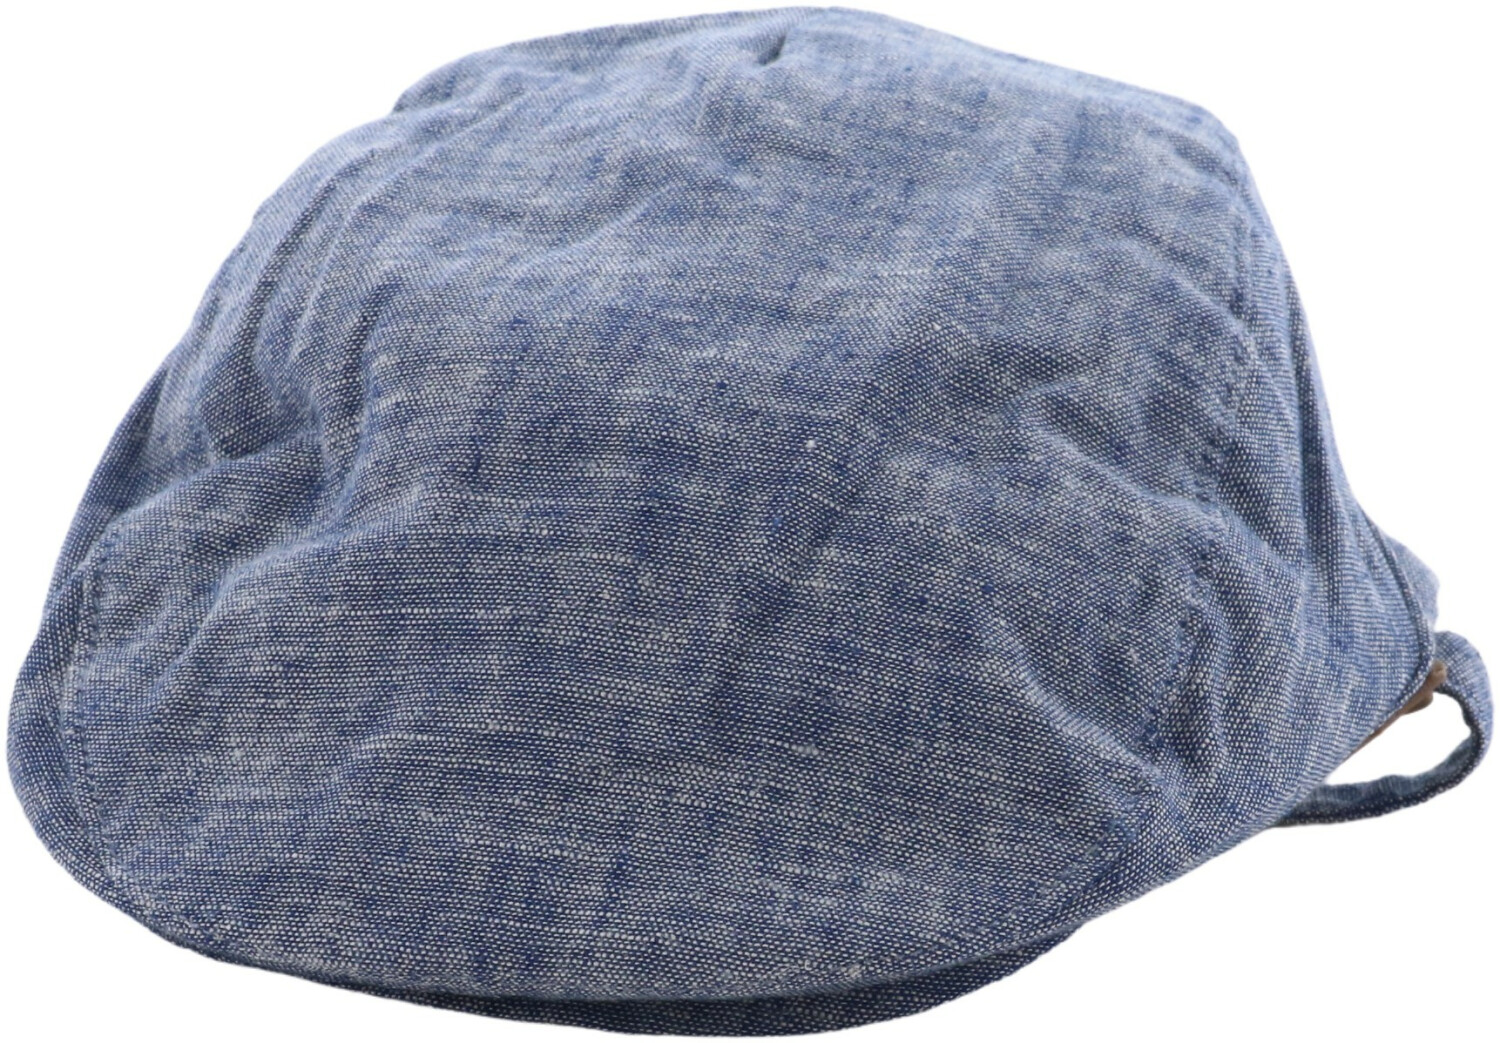 Janie And Jack Chambray Blue Cap Hats & - 0-3 Months